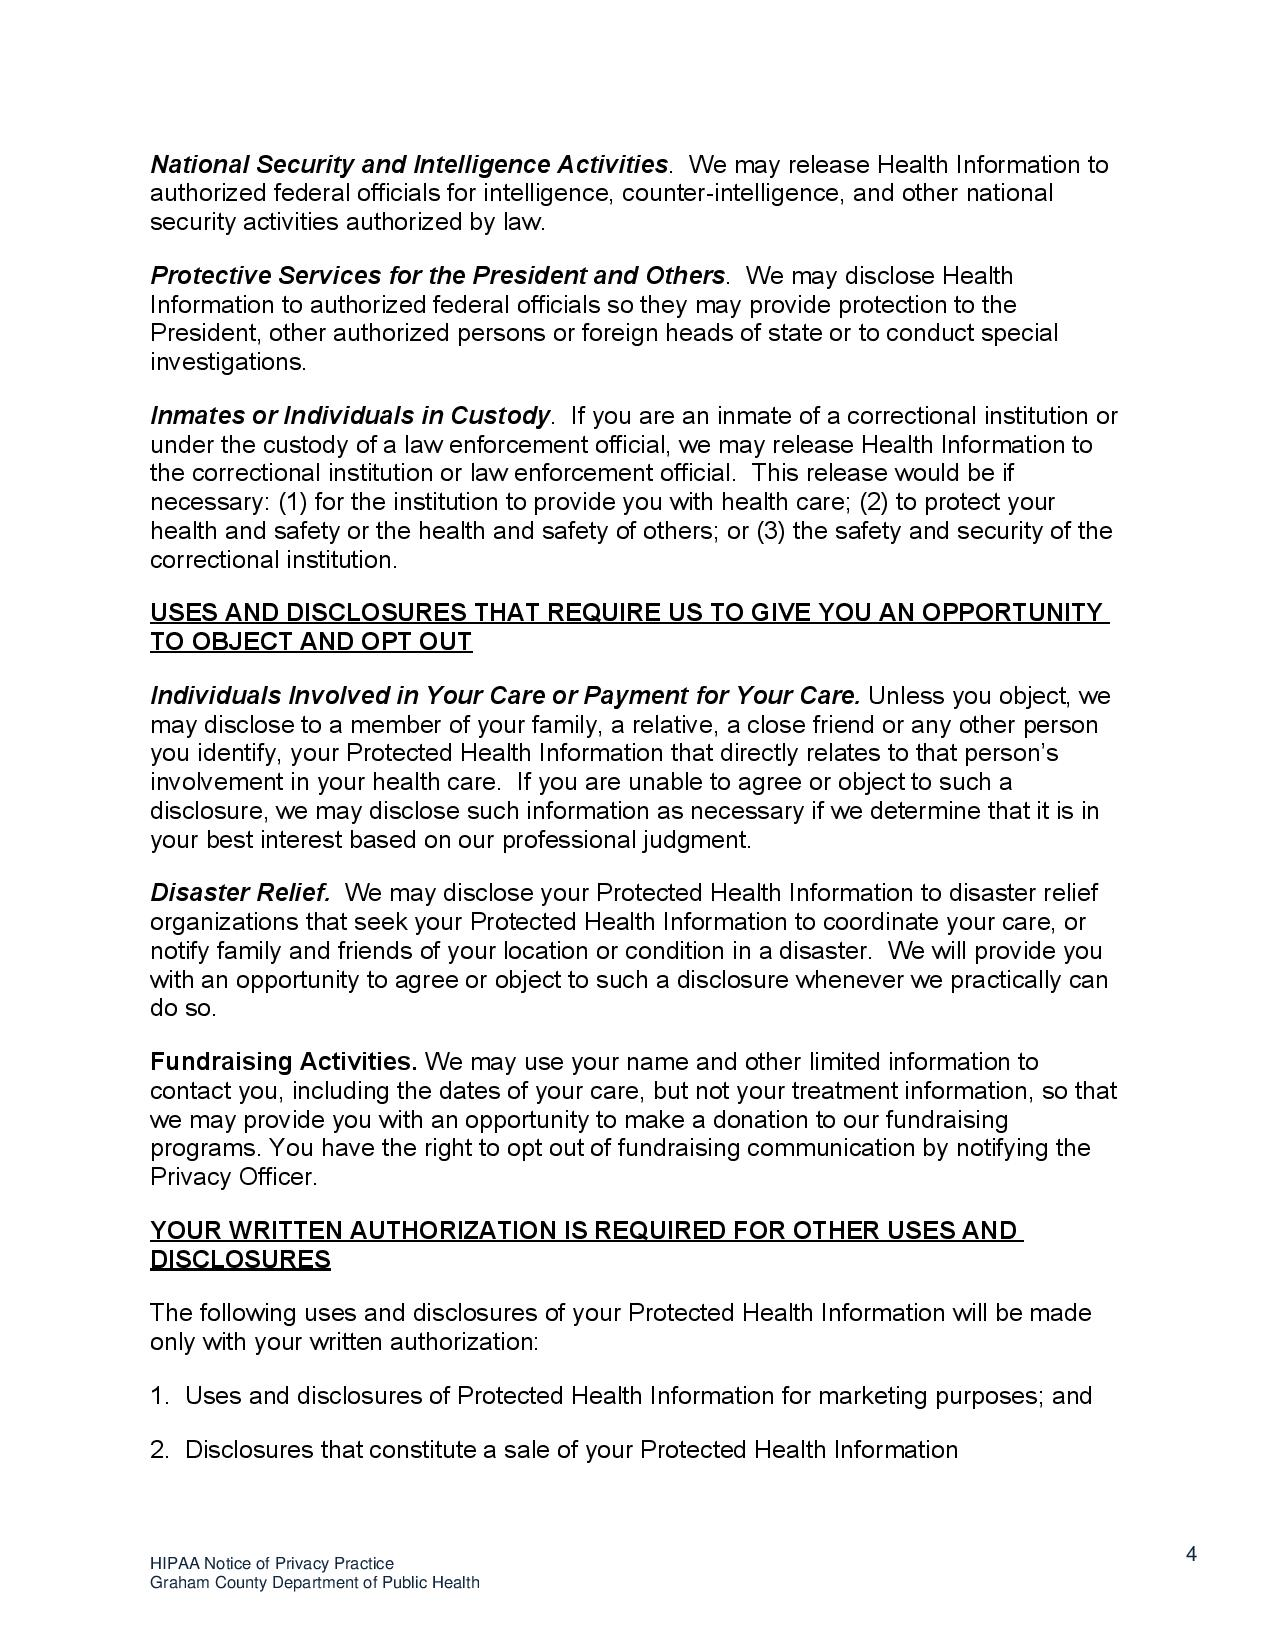 page 4 HIPAA Notice o f Privacy Practices